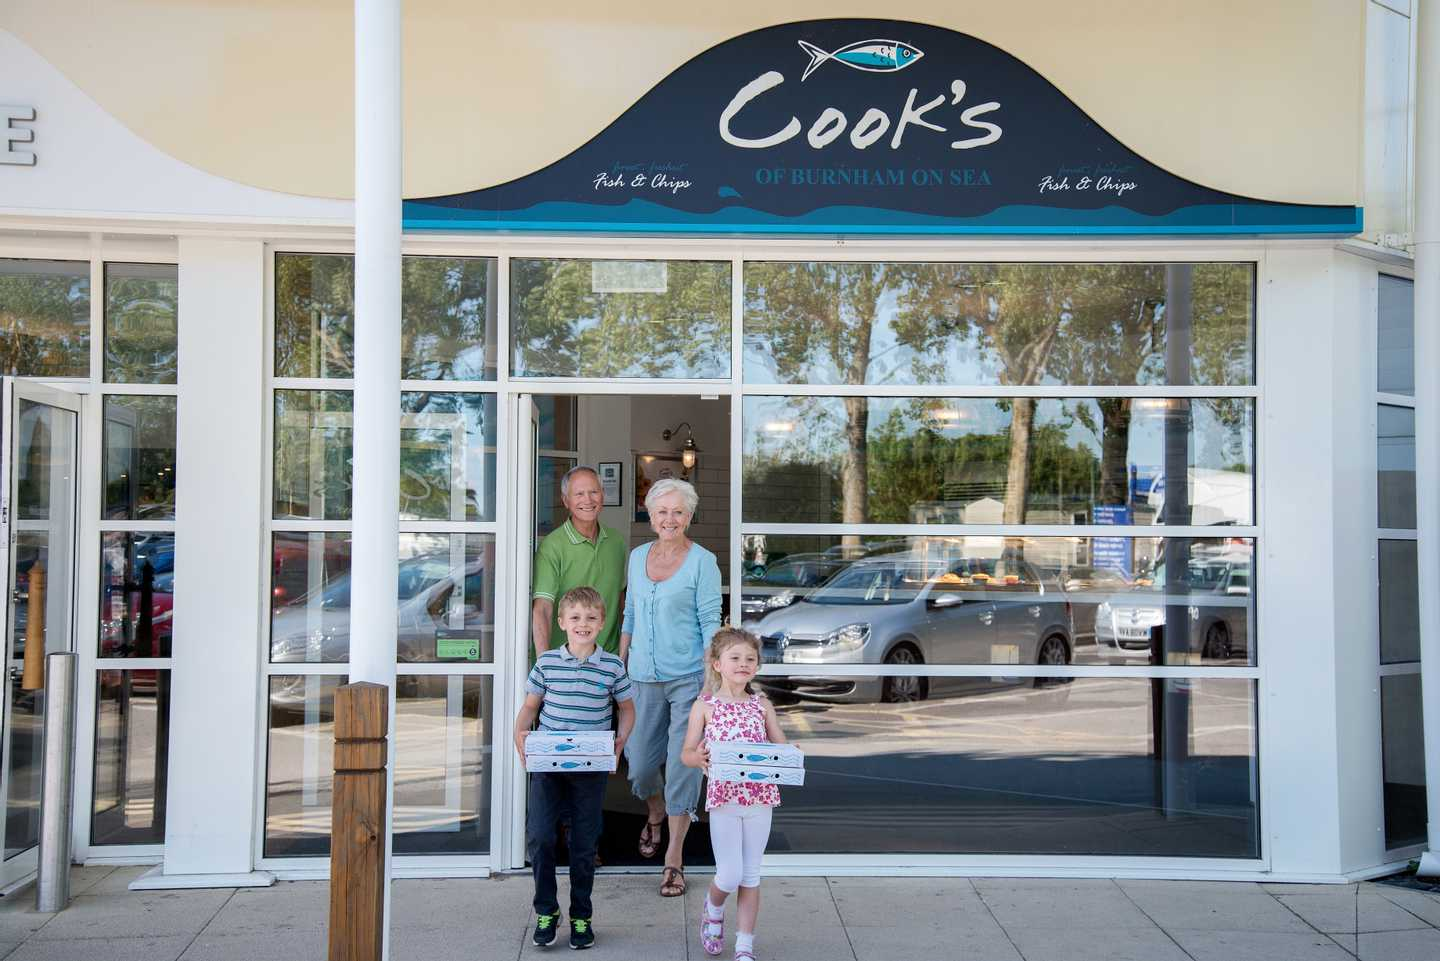 Family leaving Cook's fish and chips with their takeaway